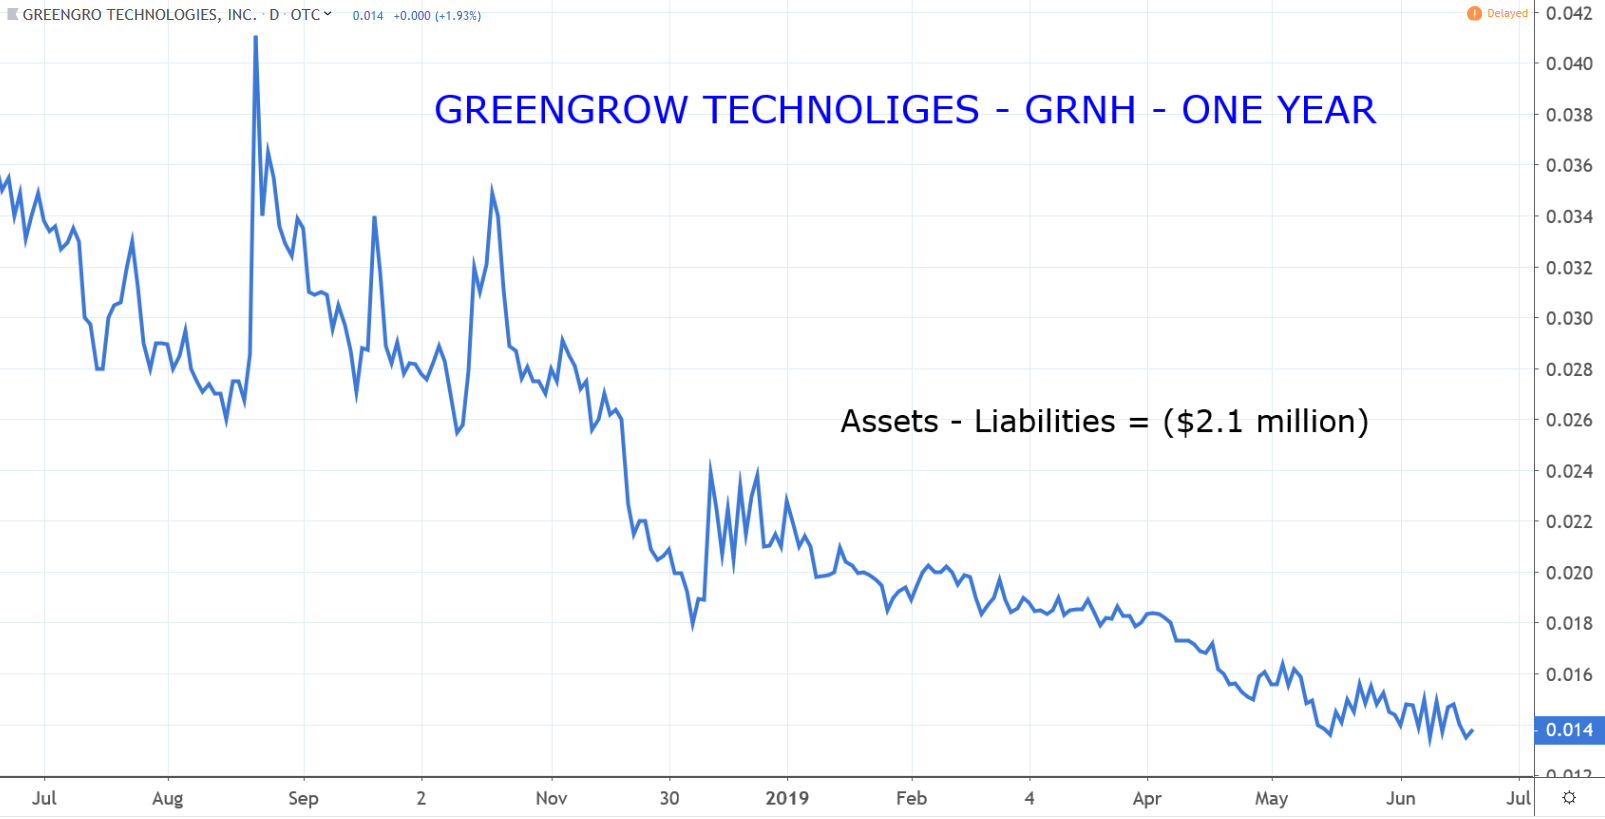 Penny Stocks: GreenGro Technologies (GRNH)